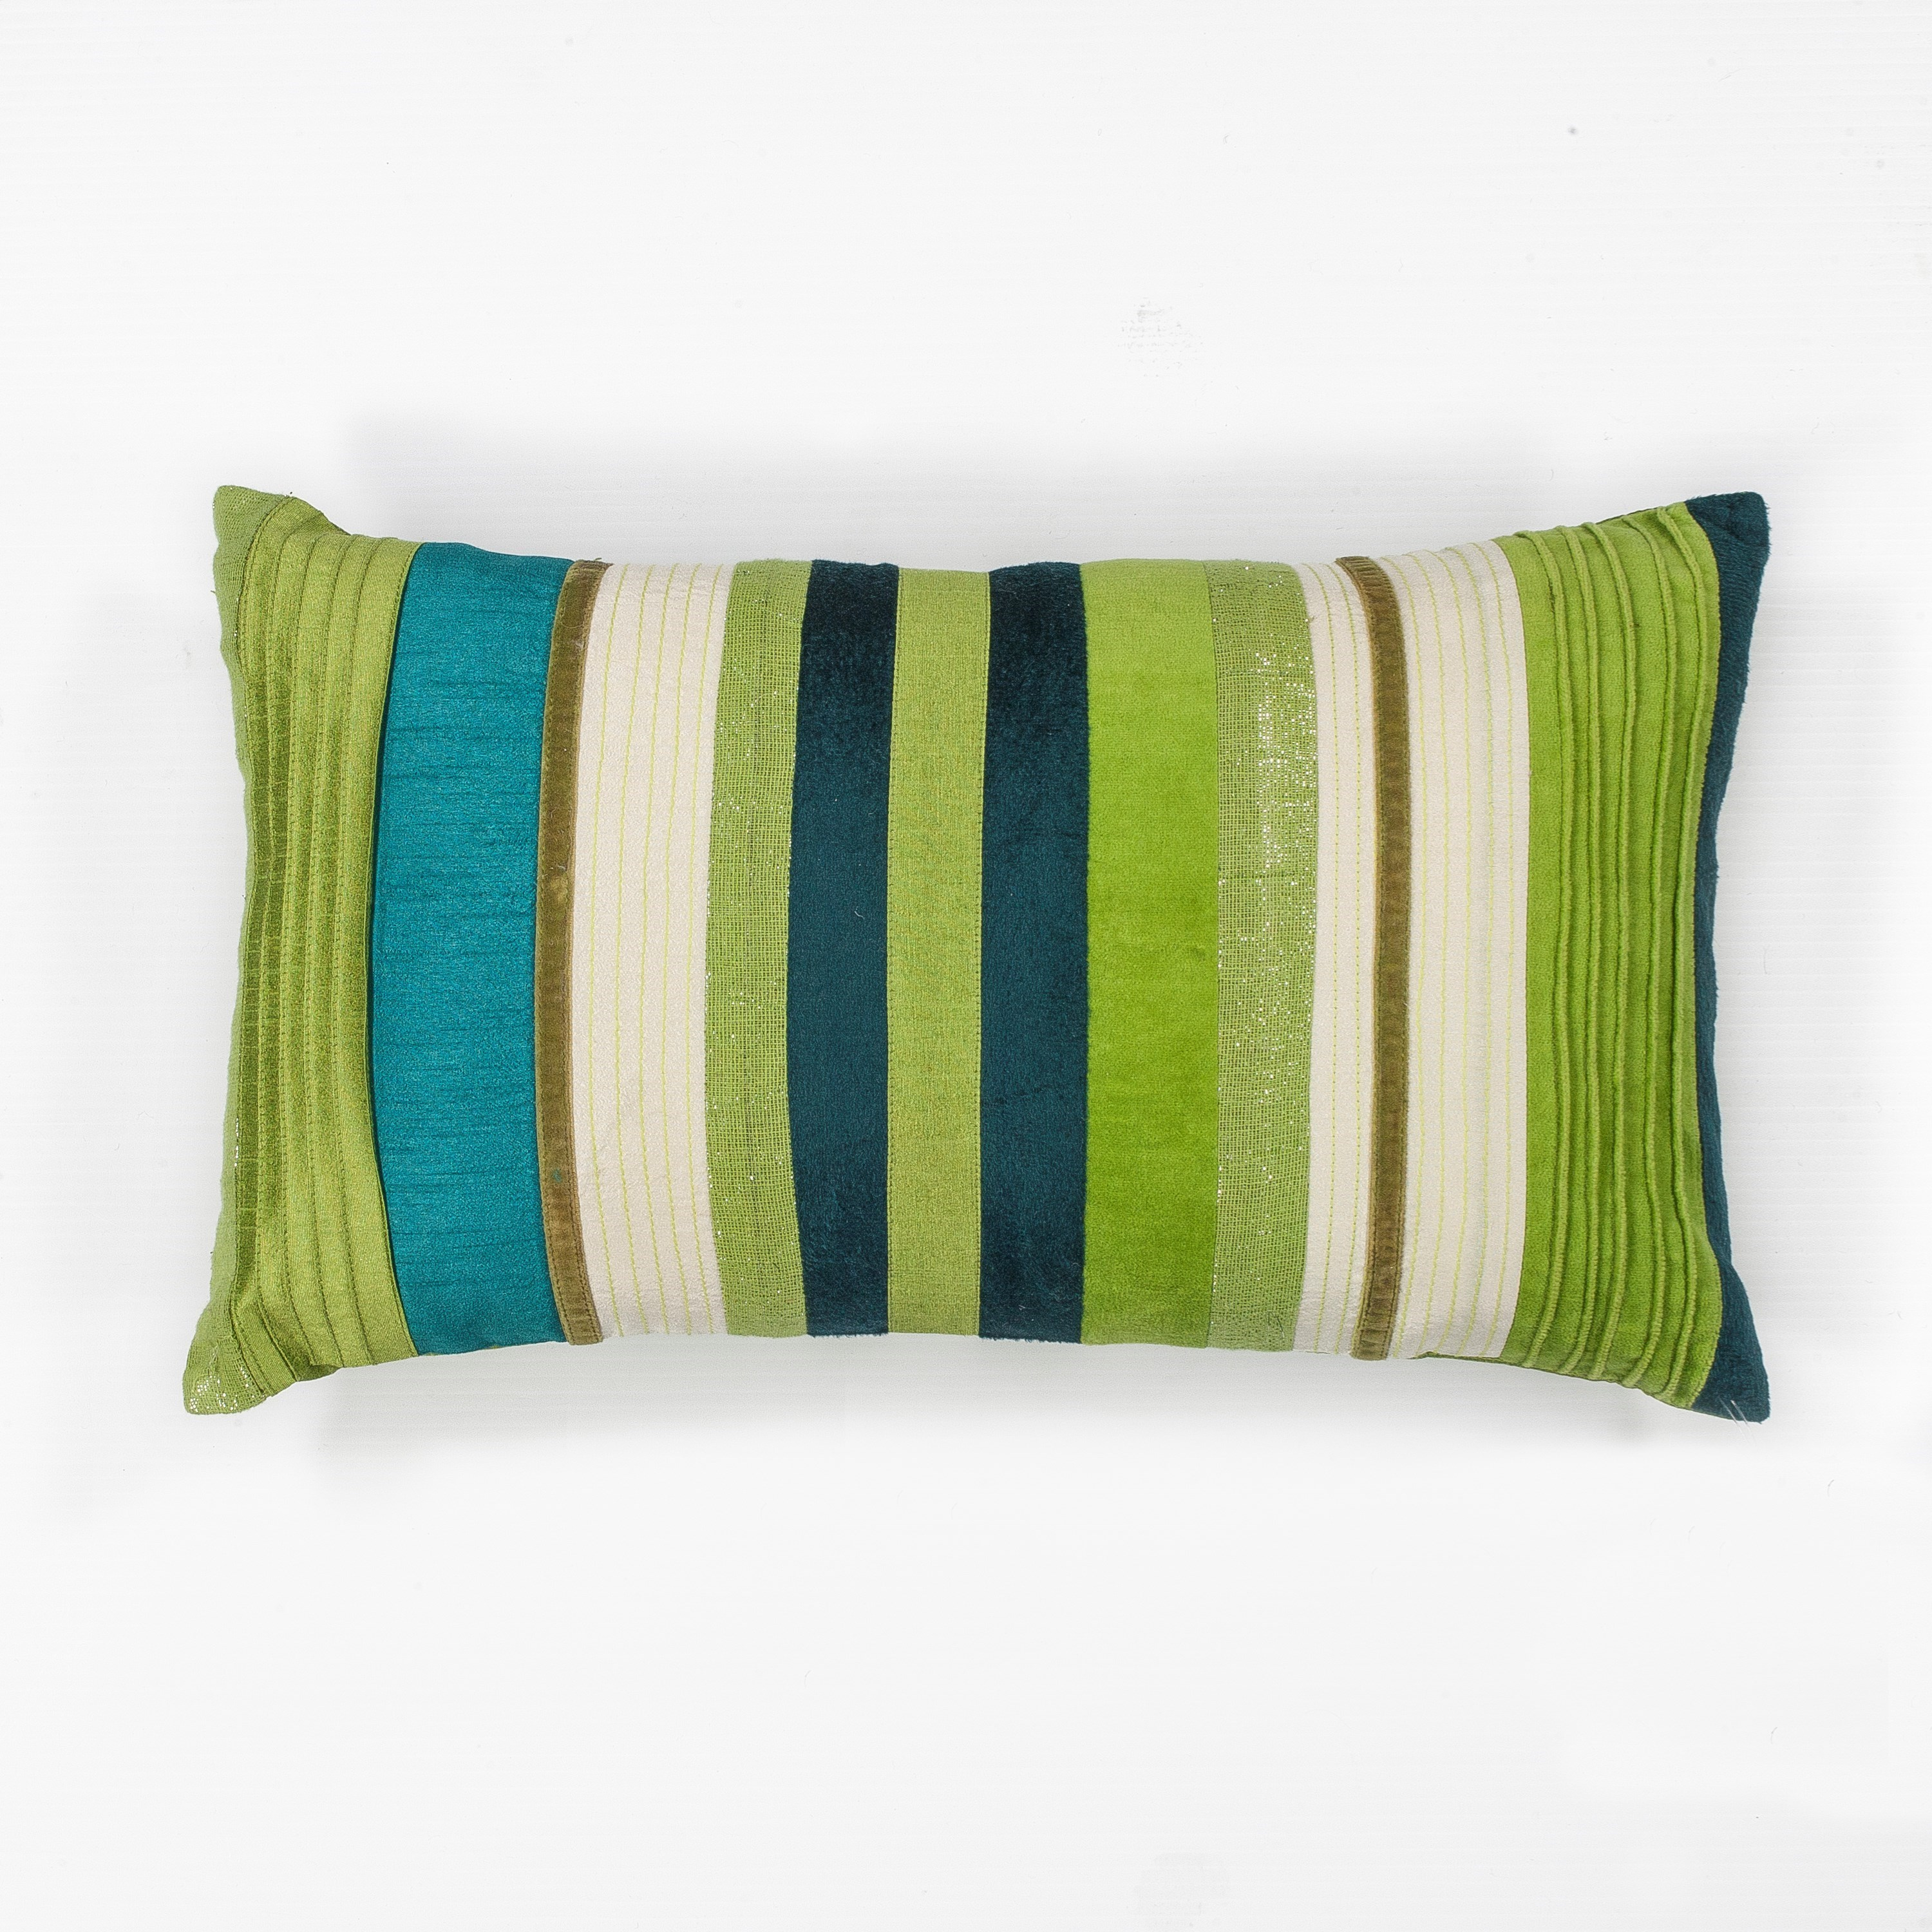 "Pillow 12"" X 20"" Teal Green Stripes Pillows by Kas at Zak's Home"